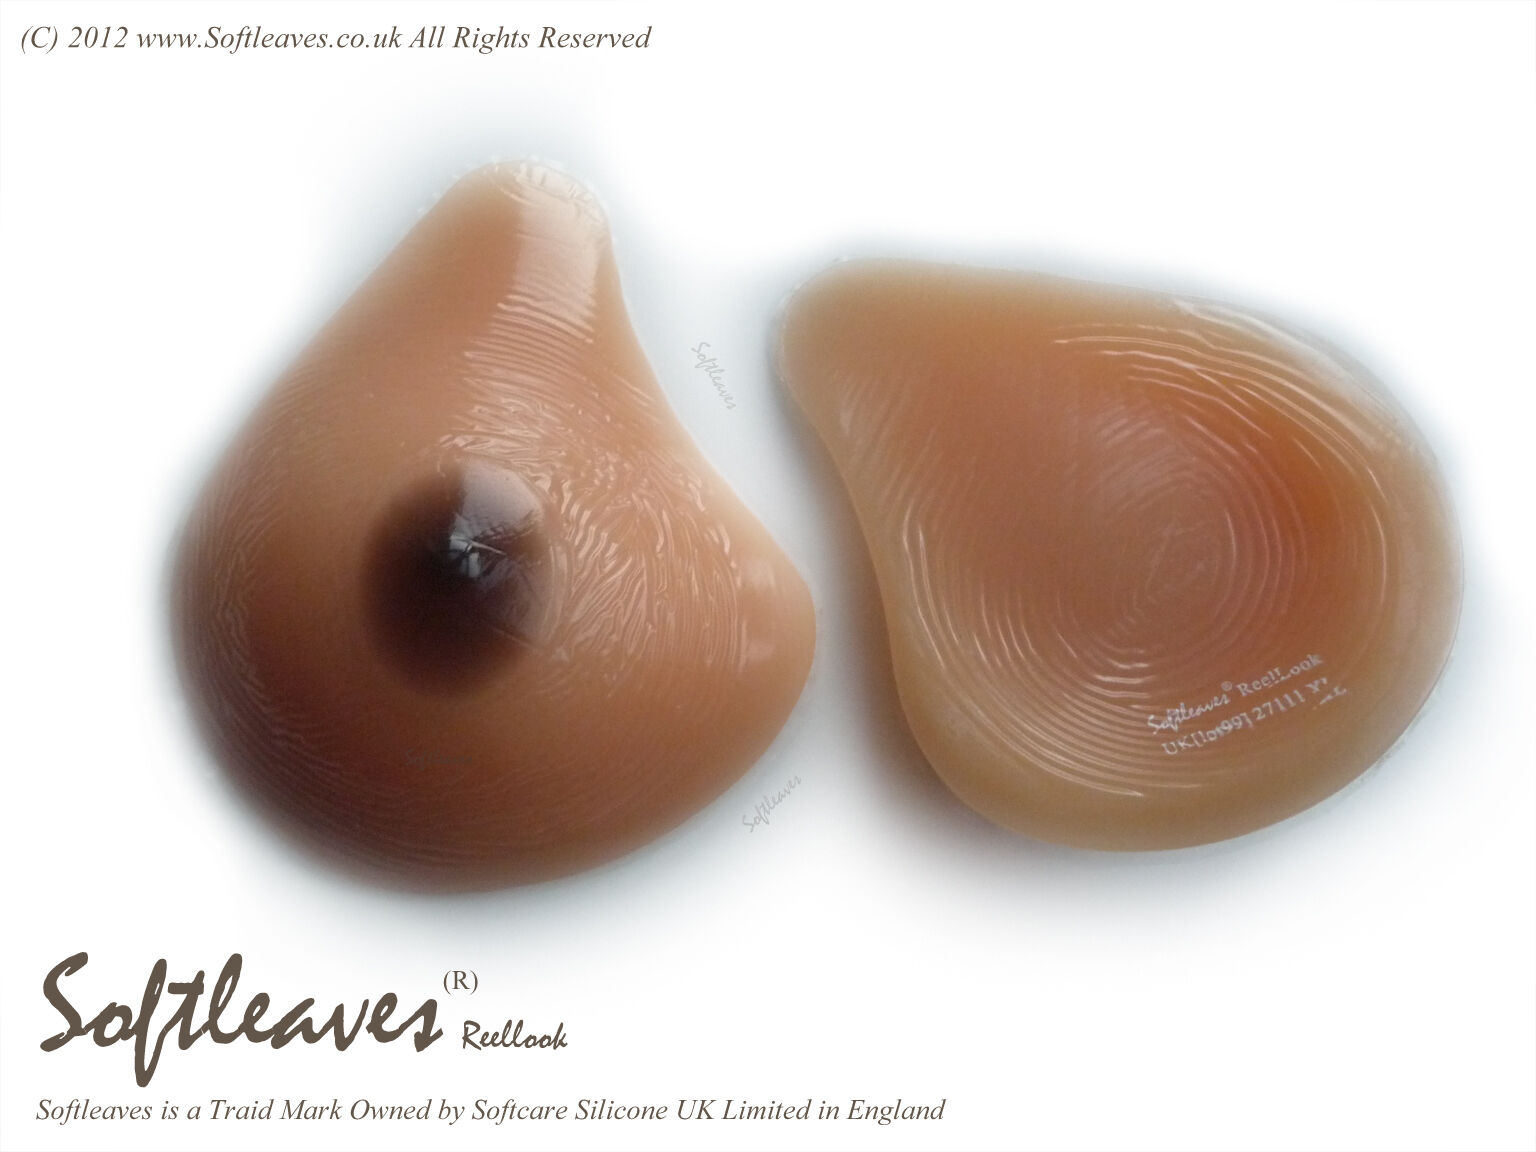 Softleaves ReelLook  Silicone Breast Forms  Not Bra Breast Prosthesis Implants